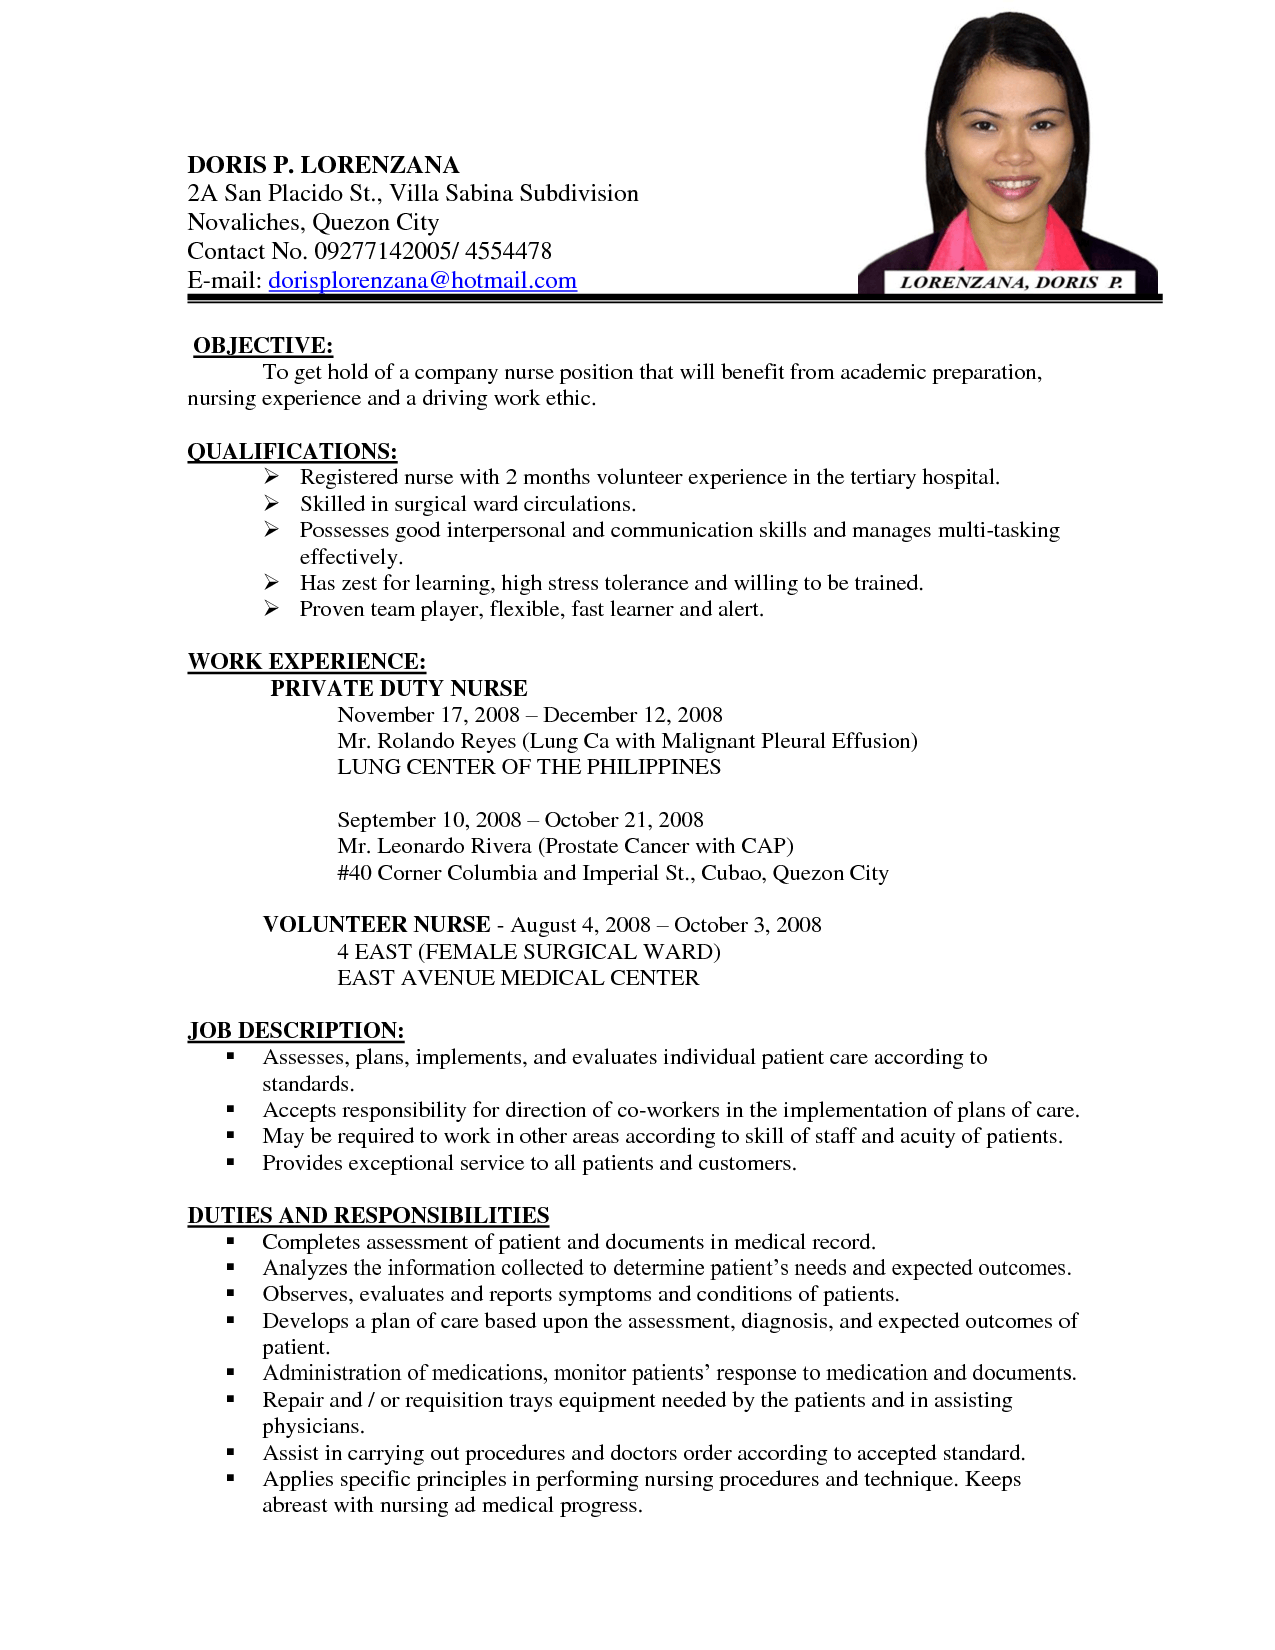 sample resume for nurses - Resume Template For Rn